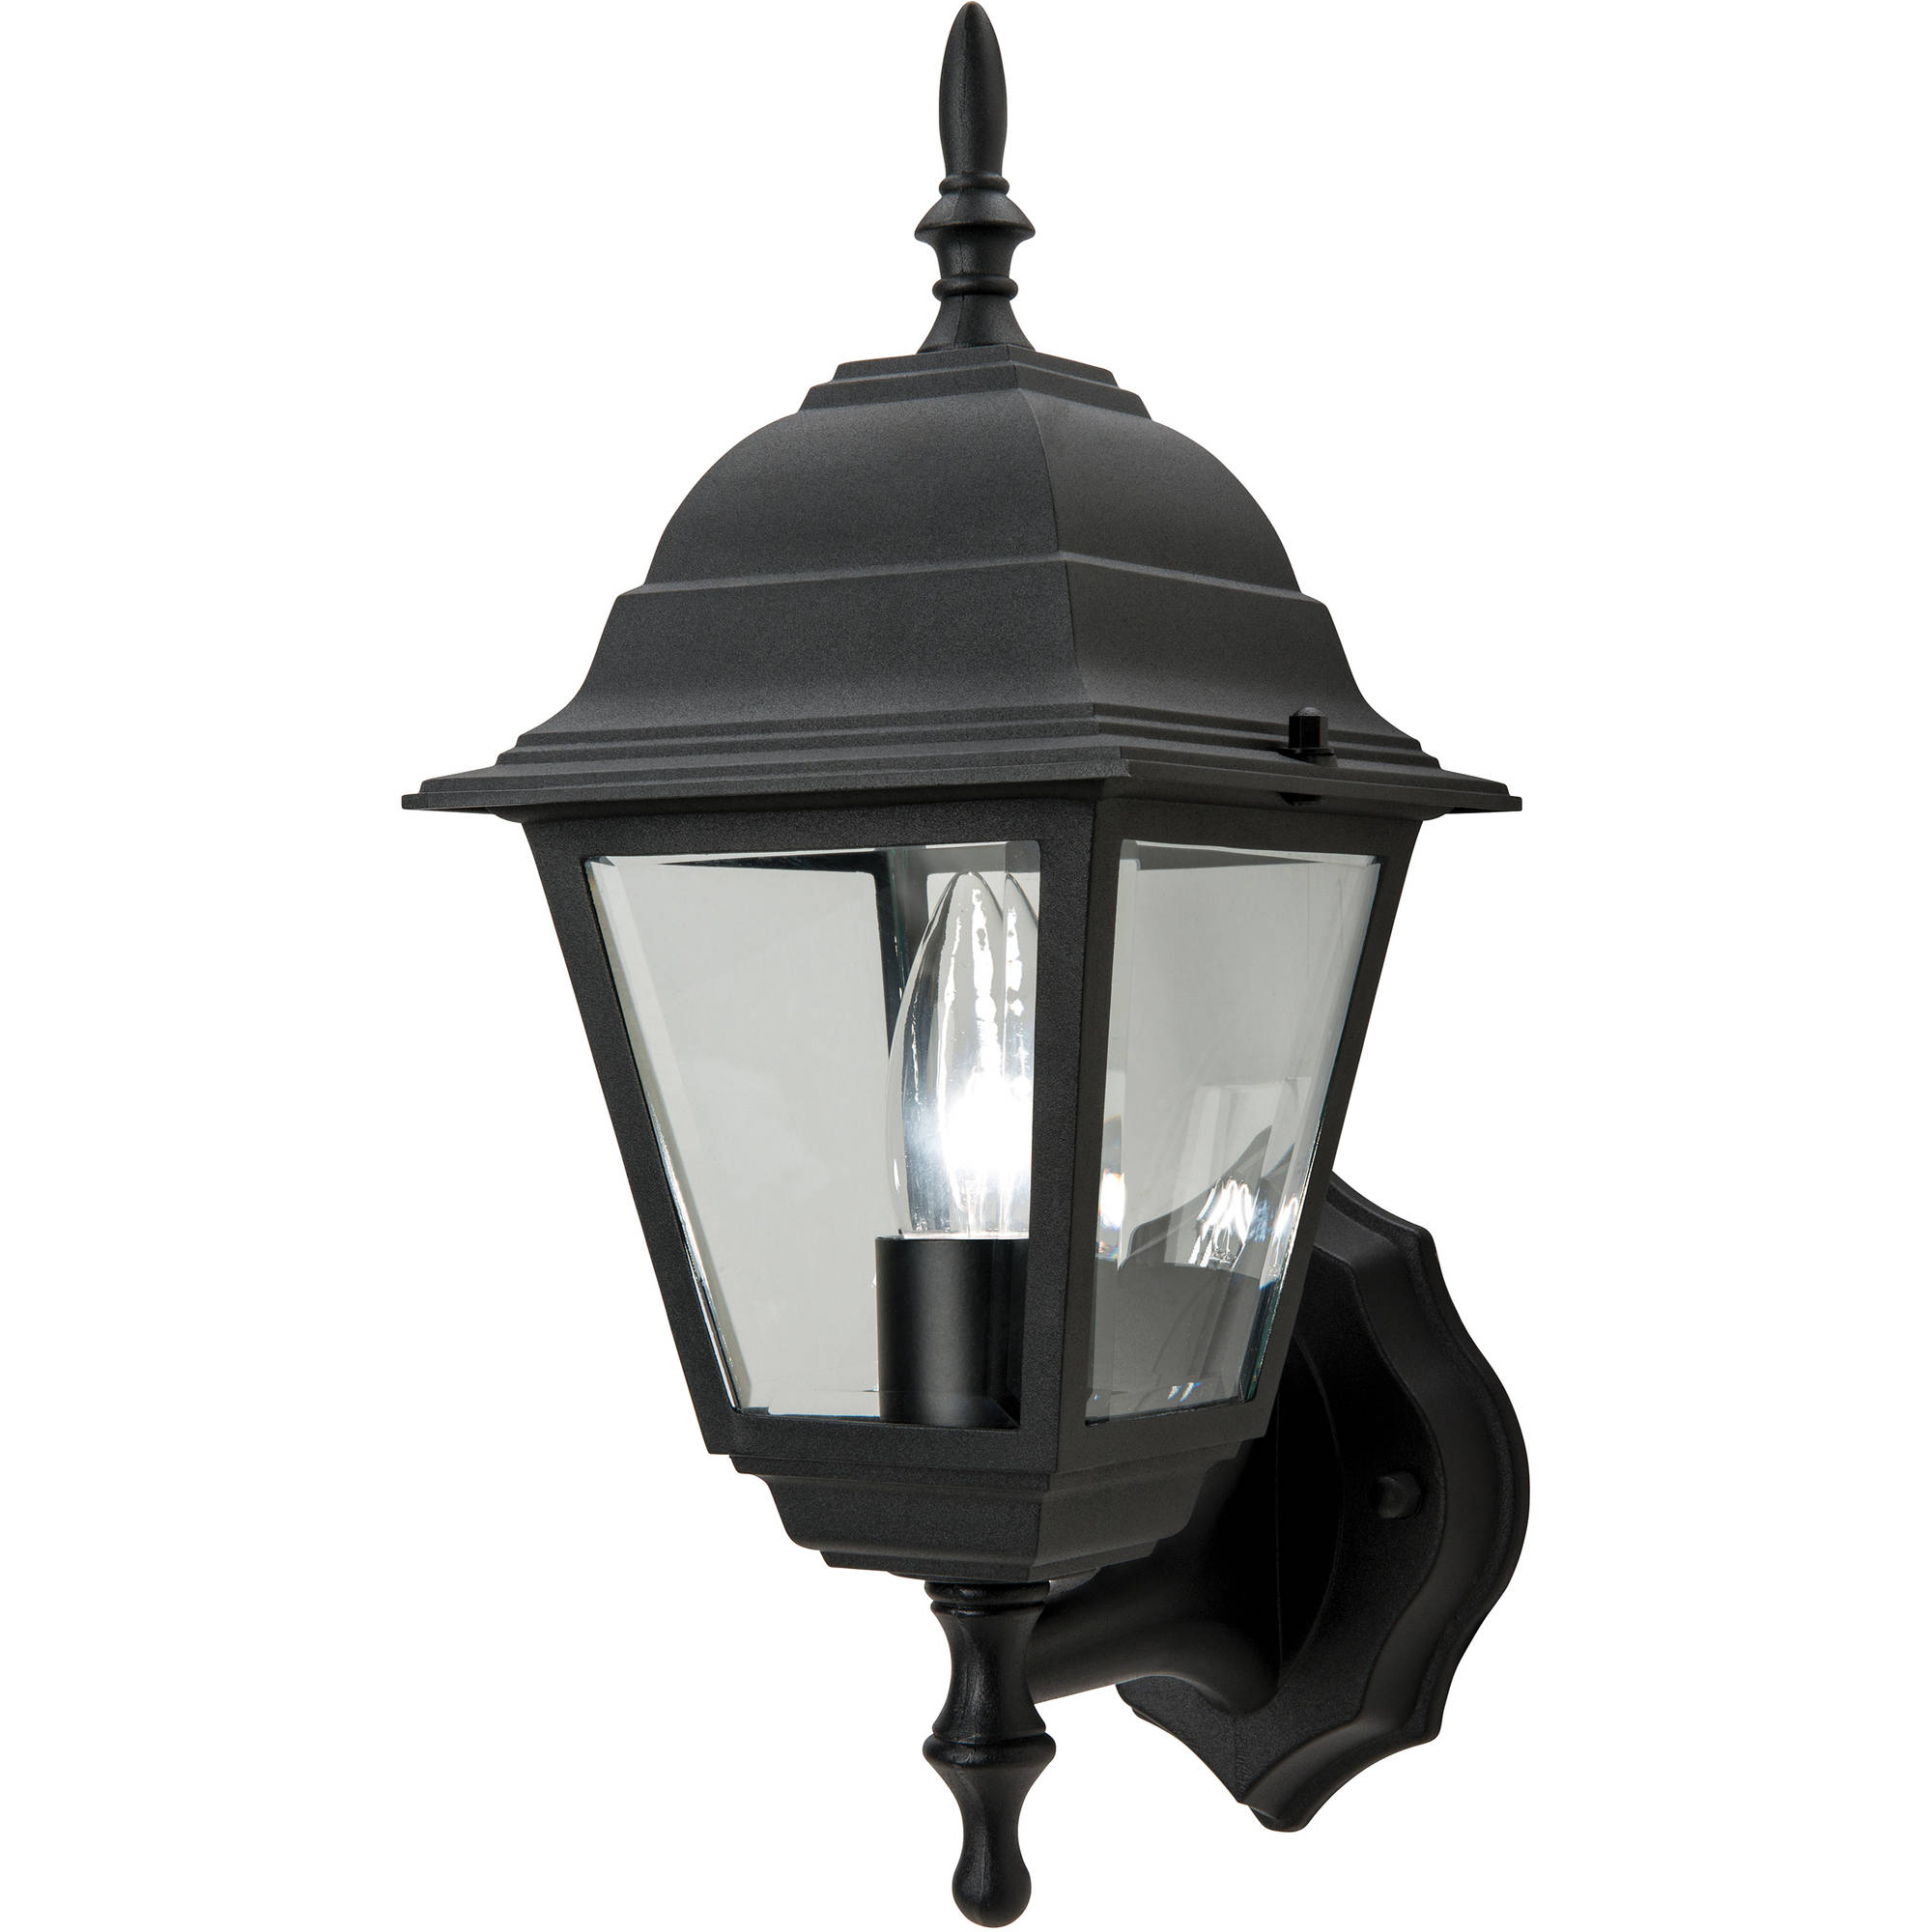 Chapter Outdoor Decorative Black Coach or Porch Light by Hampton Products Int'l Corp.